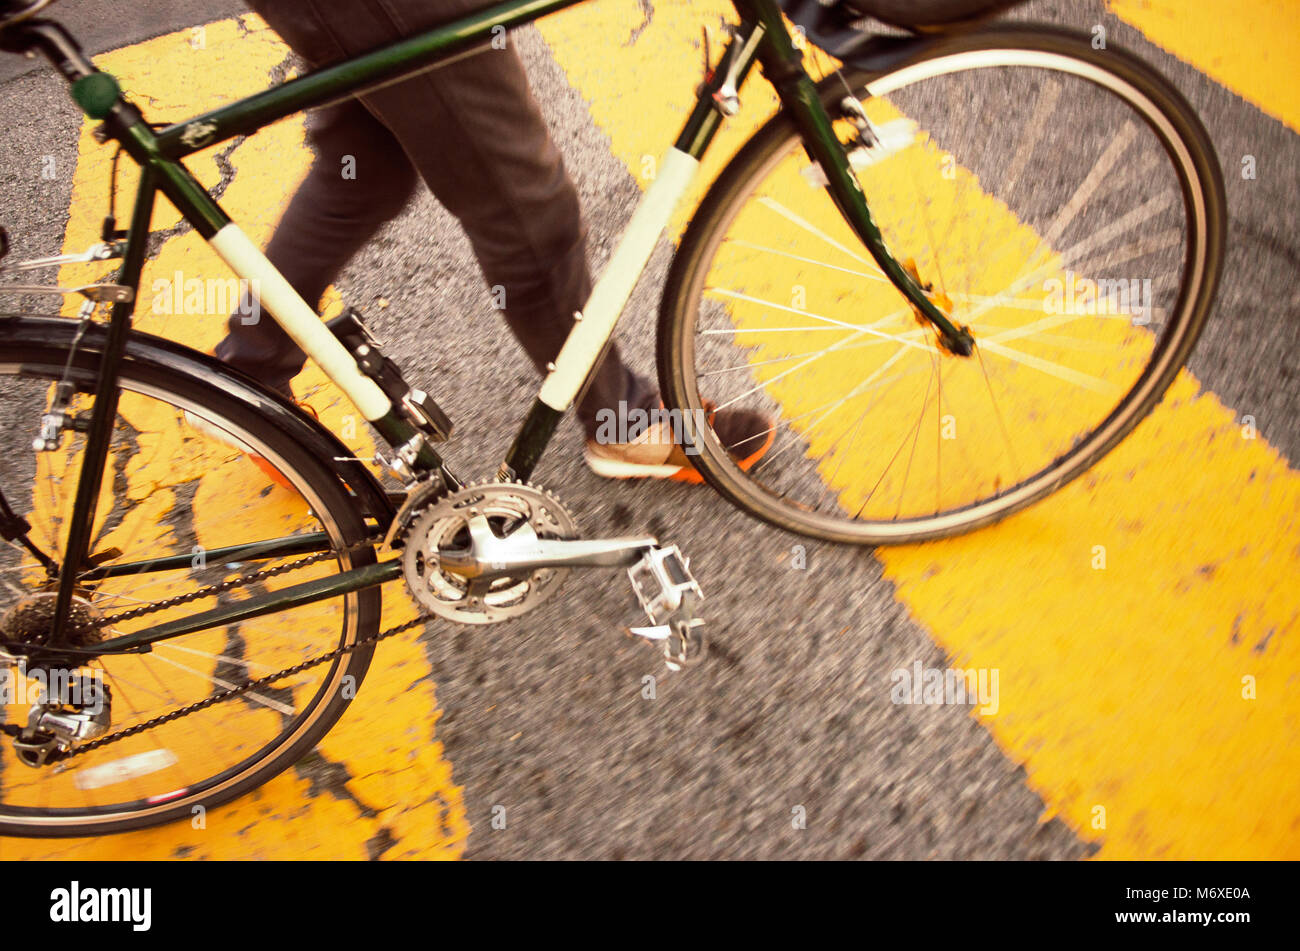 man walking his bike in a park - Stock Image